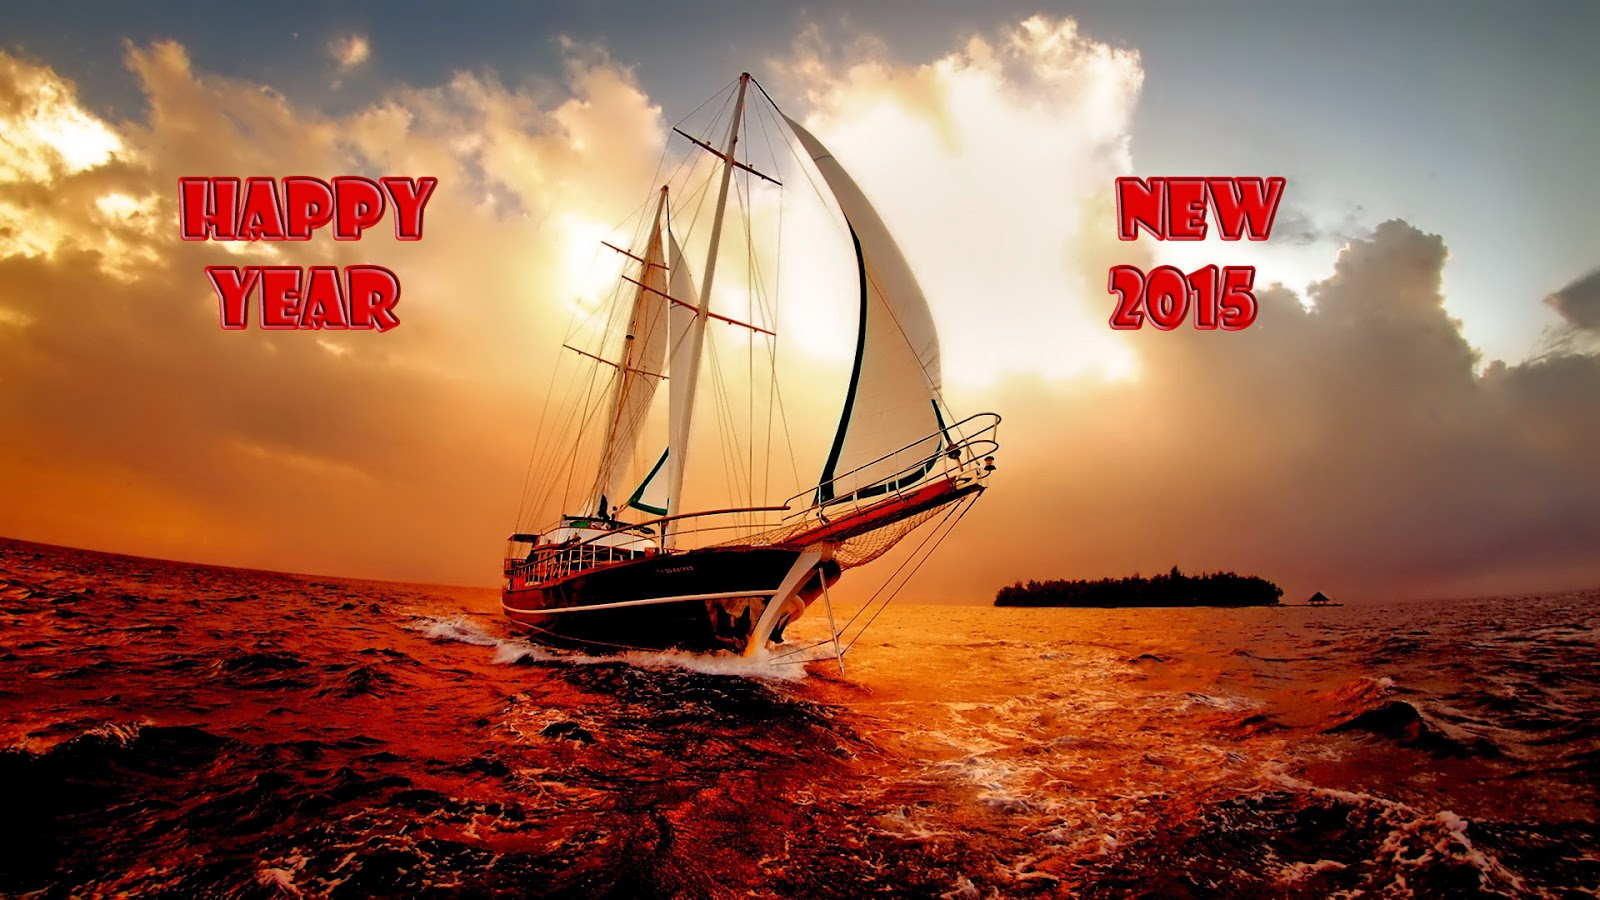 Happy New Year 2015 HD Cards - Best Images Wallpapers